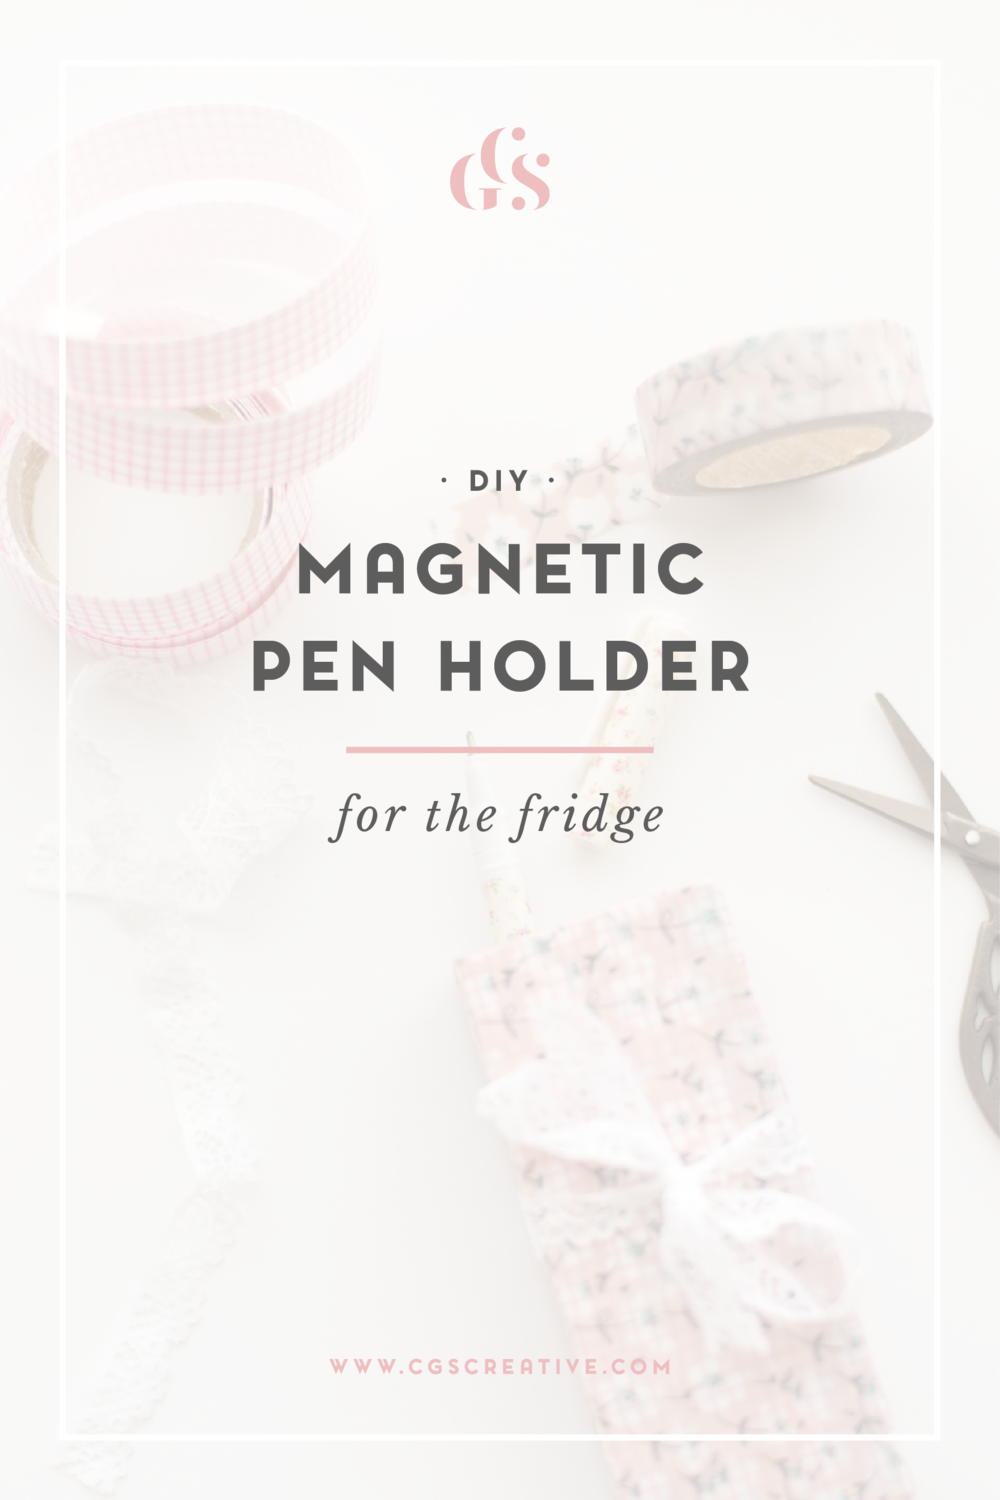 DIY Magnetic Pen Holder for the Fridge_Artboard 3.png